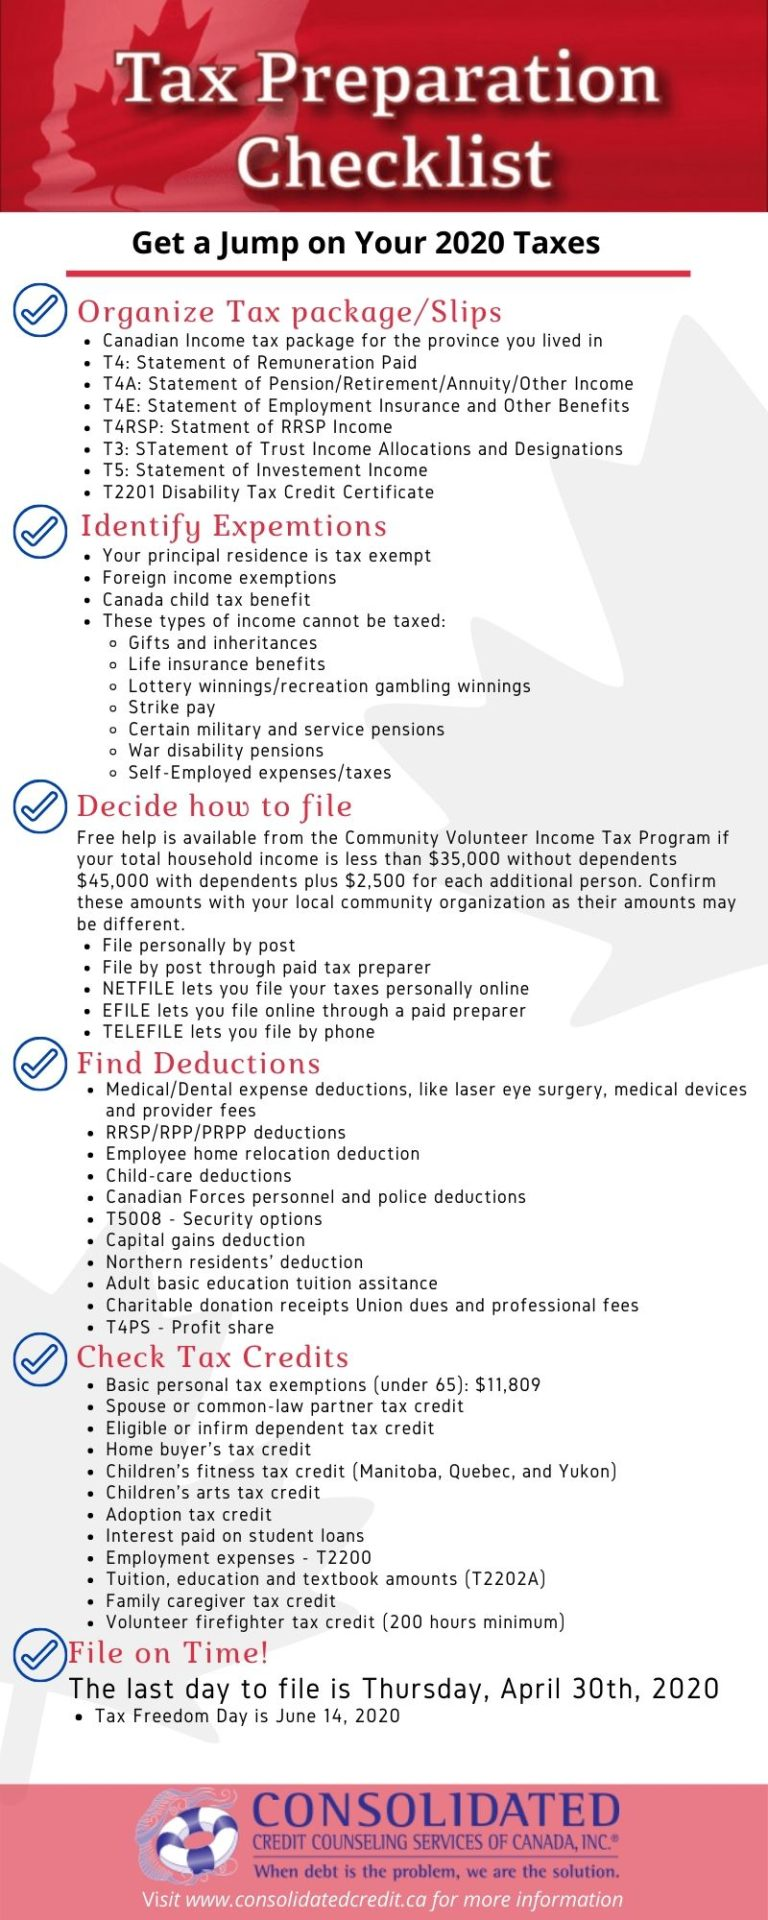 Tax preparation checklist 2020